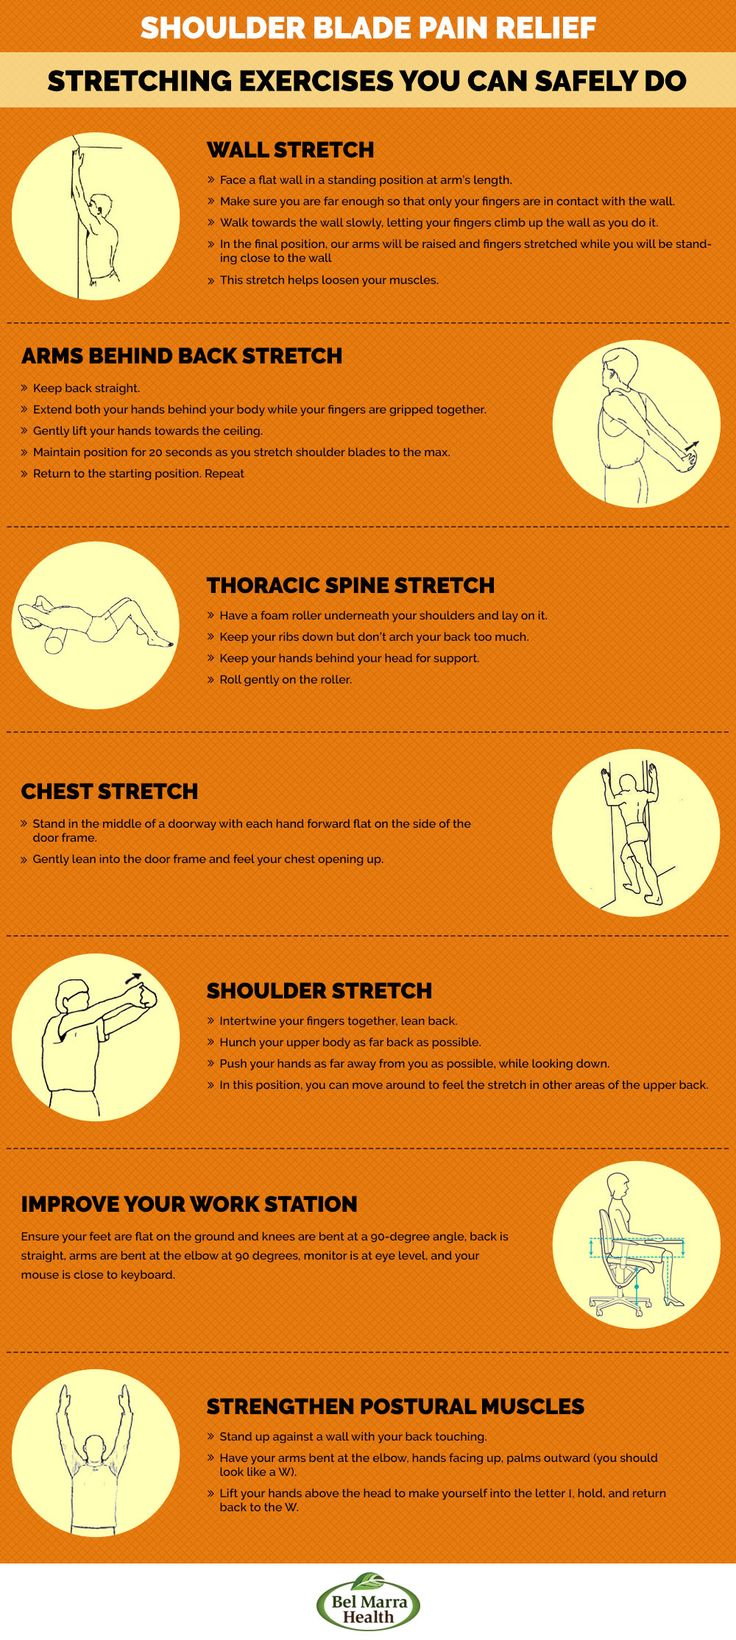 Stretches for Shoulder Blade Pain Related Reading: Pinched nerve in shoulder blade: Causes, symptoms, treatments, and exercises A pinched nerve in a shoulder blade is a common, but temporary condition that can be very painful and cause a lot of discomfort. A pinched nerve happens when too much pressure is applied to the tissue surrounding …